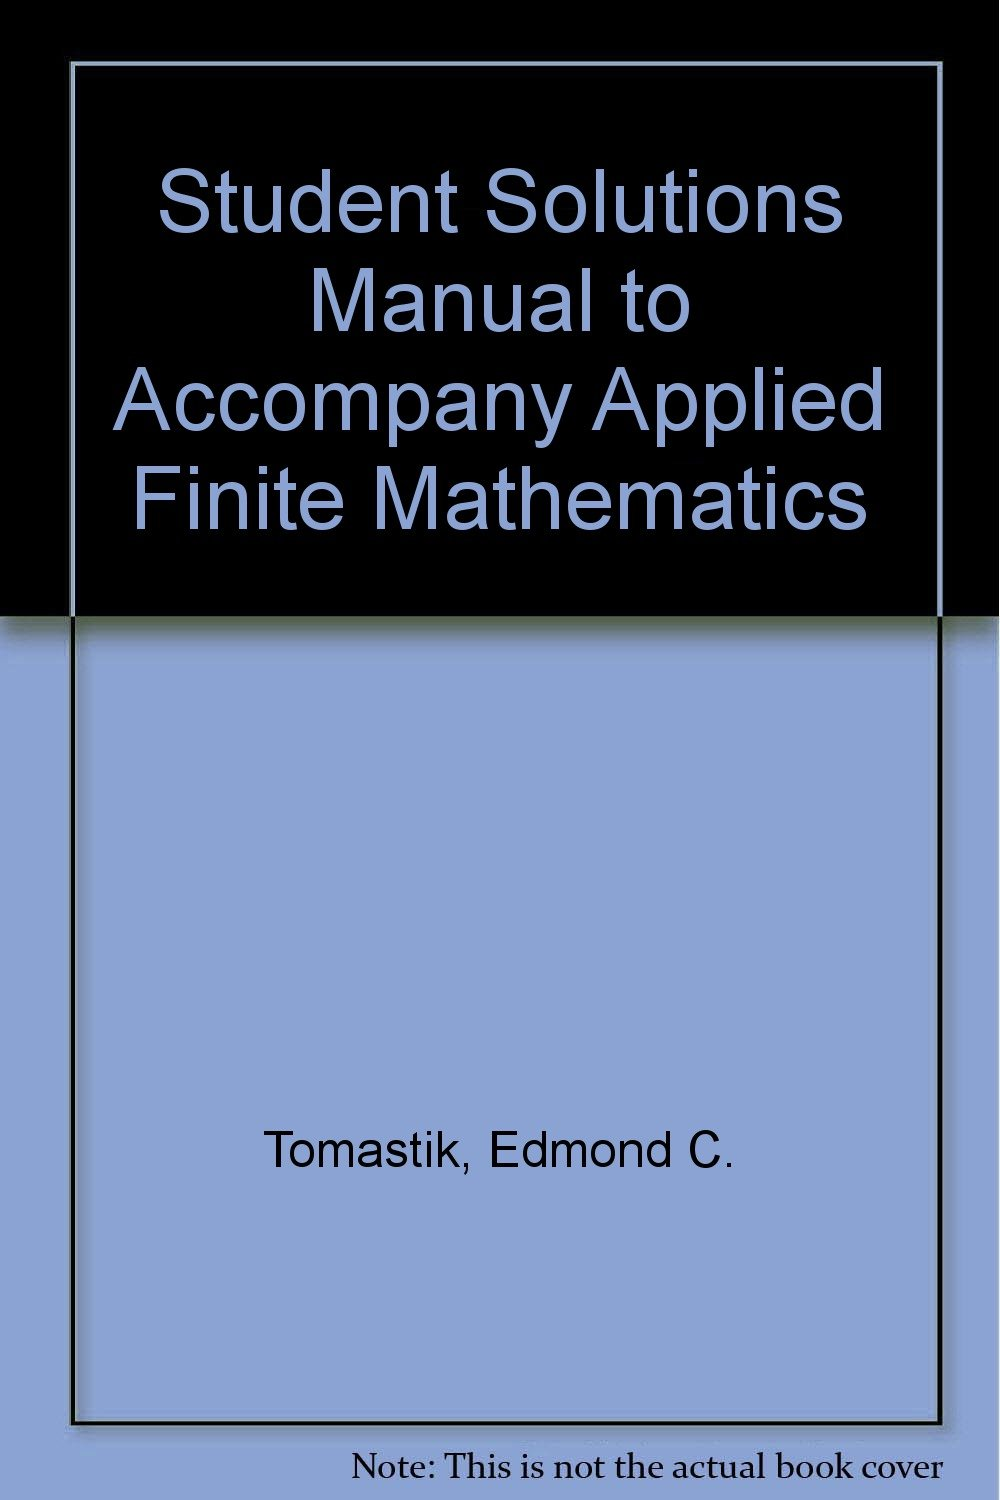 Buy Student Solutions Manual to Accompany Applied Finite Mathematics Book  Online at Low Prices in India | Student Solutions Manual to Accompany  Applied ...